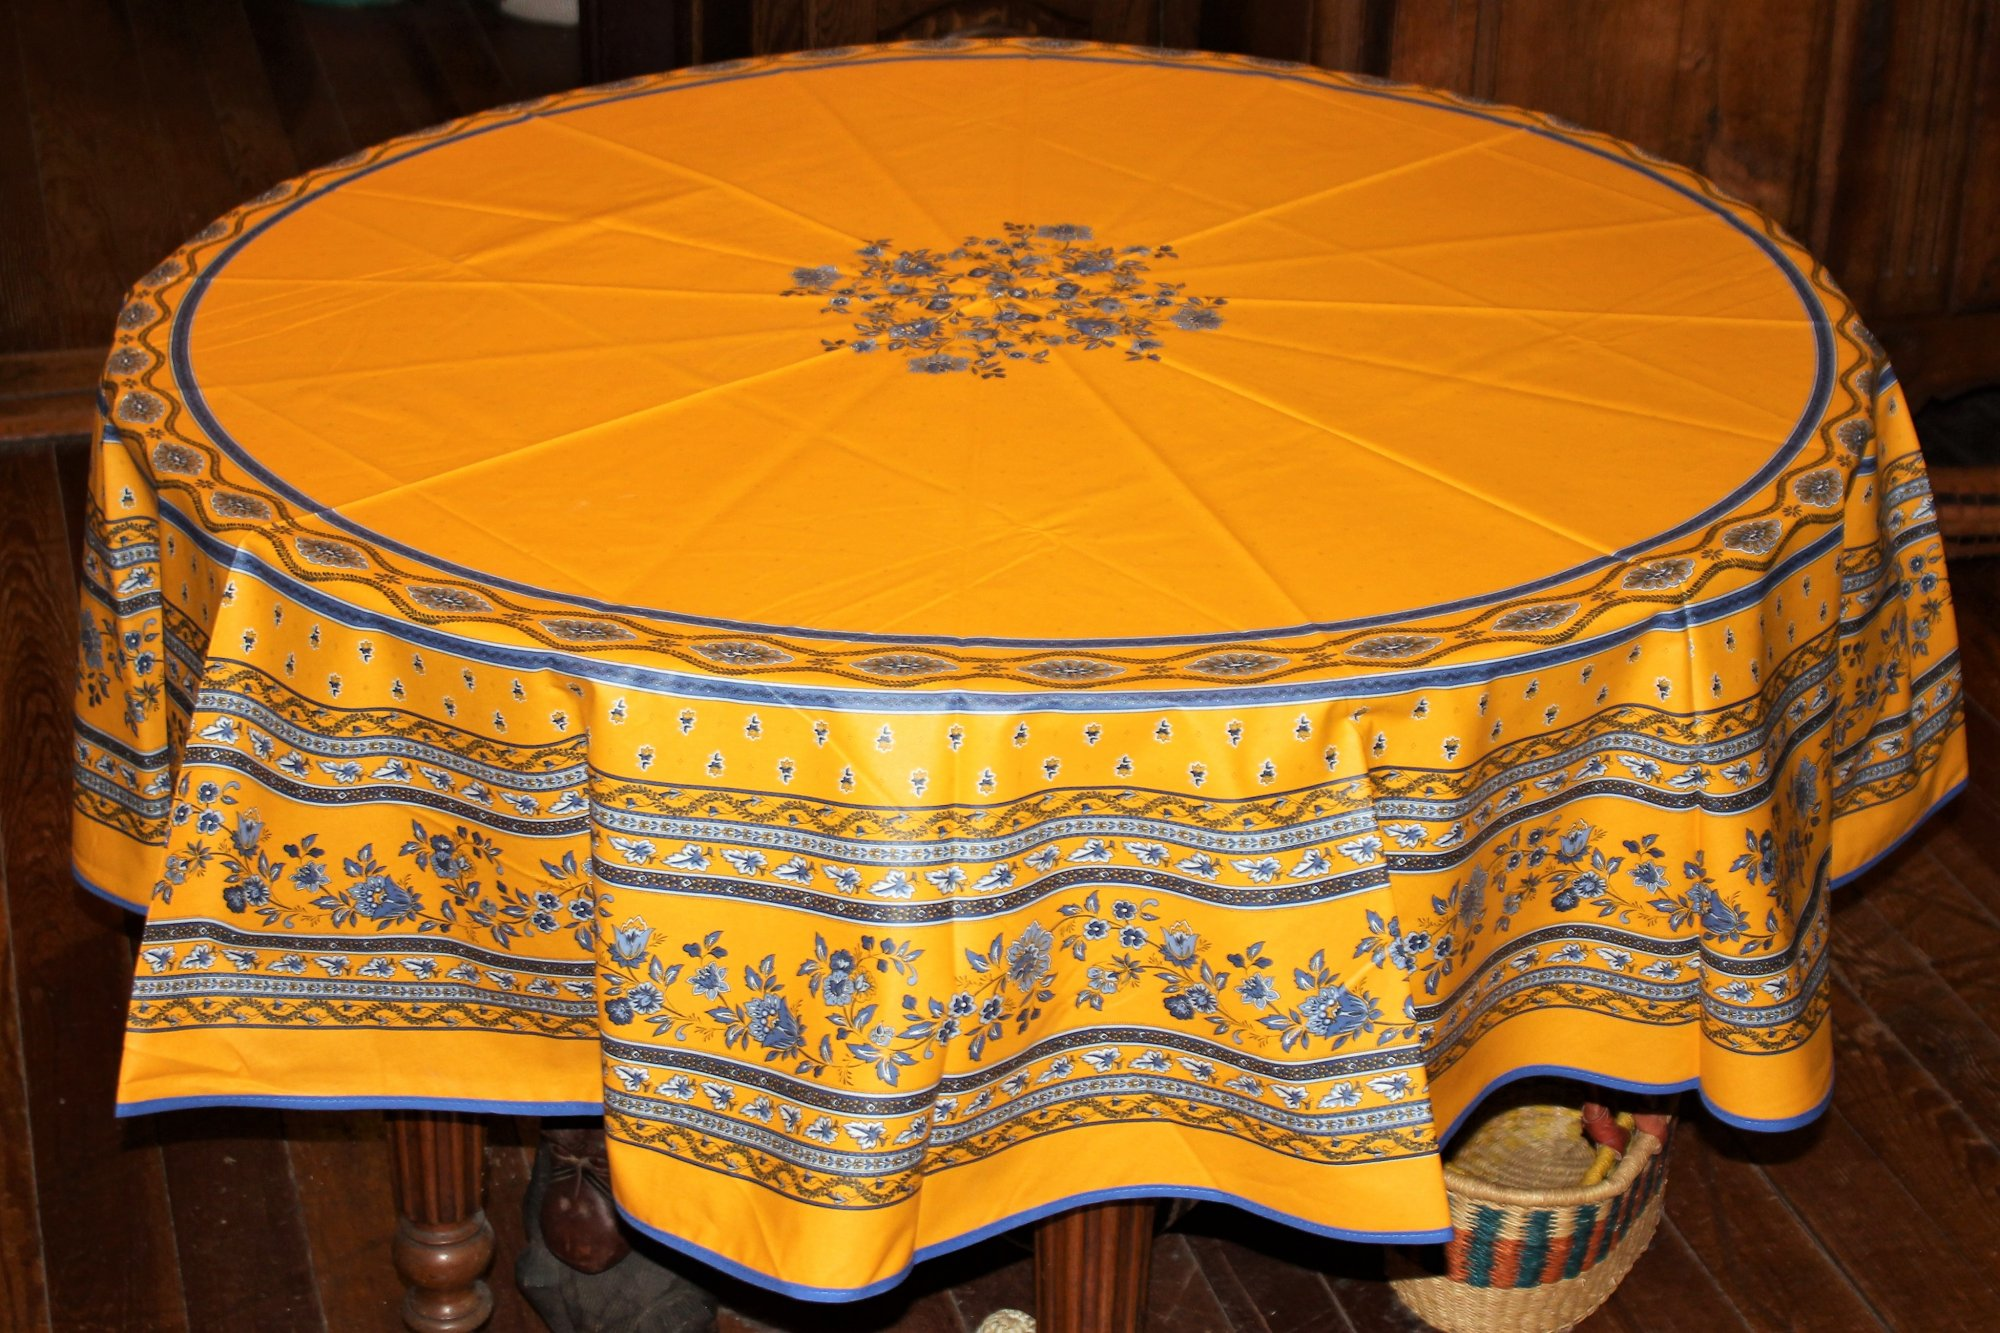 70 French Acrylic-Coated Round Tablecloth Avignon (Yellow)